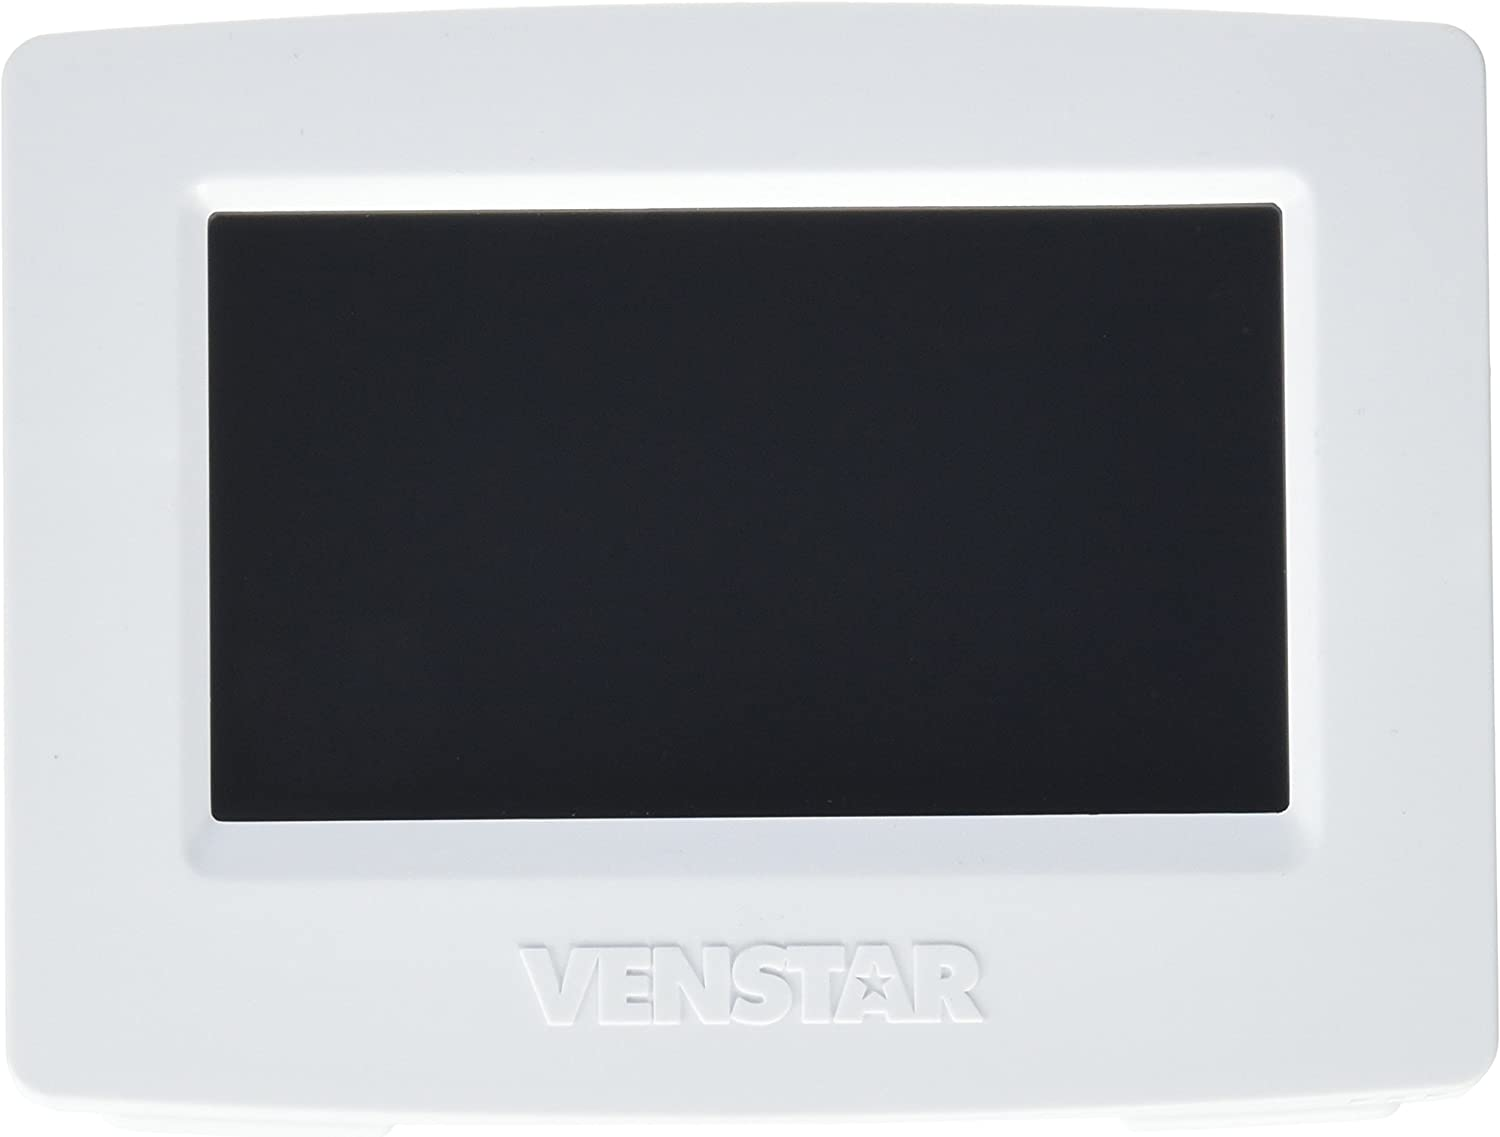 Venstar ColorTouch T8900 Thermostat with WiFi and Humidity Control